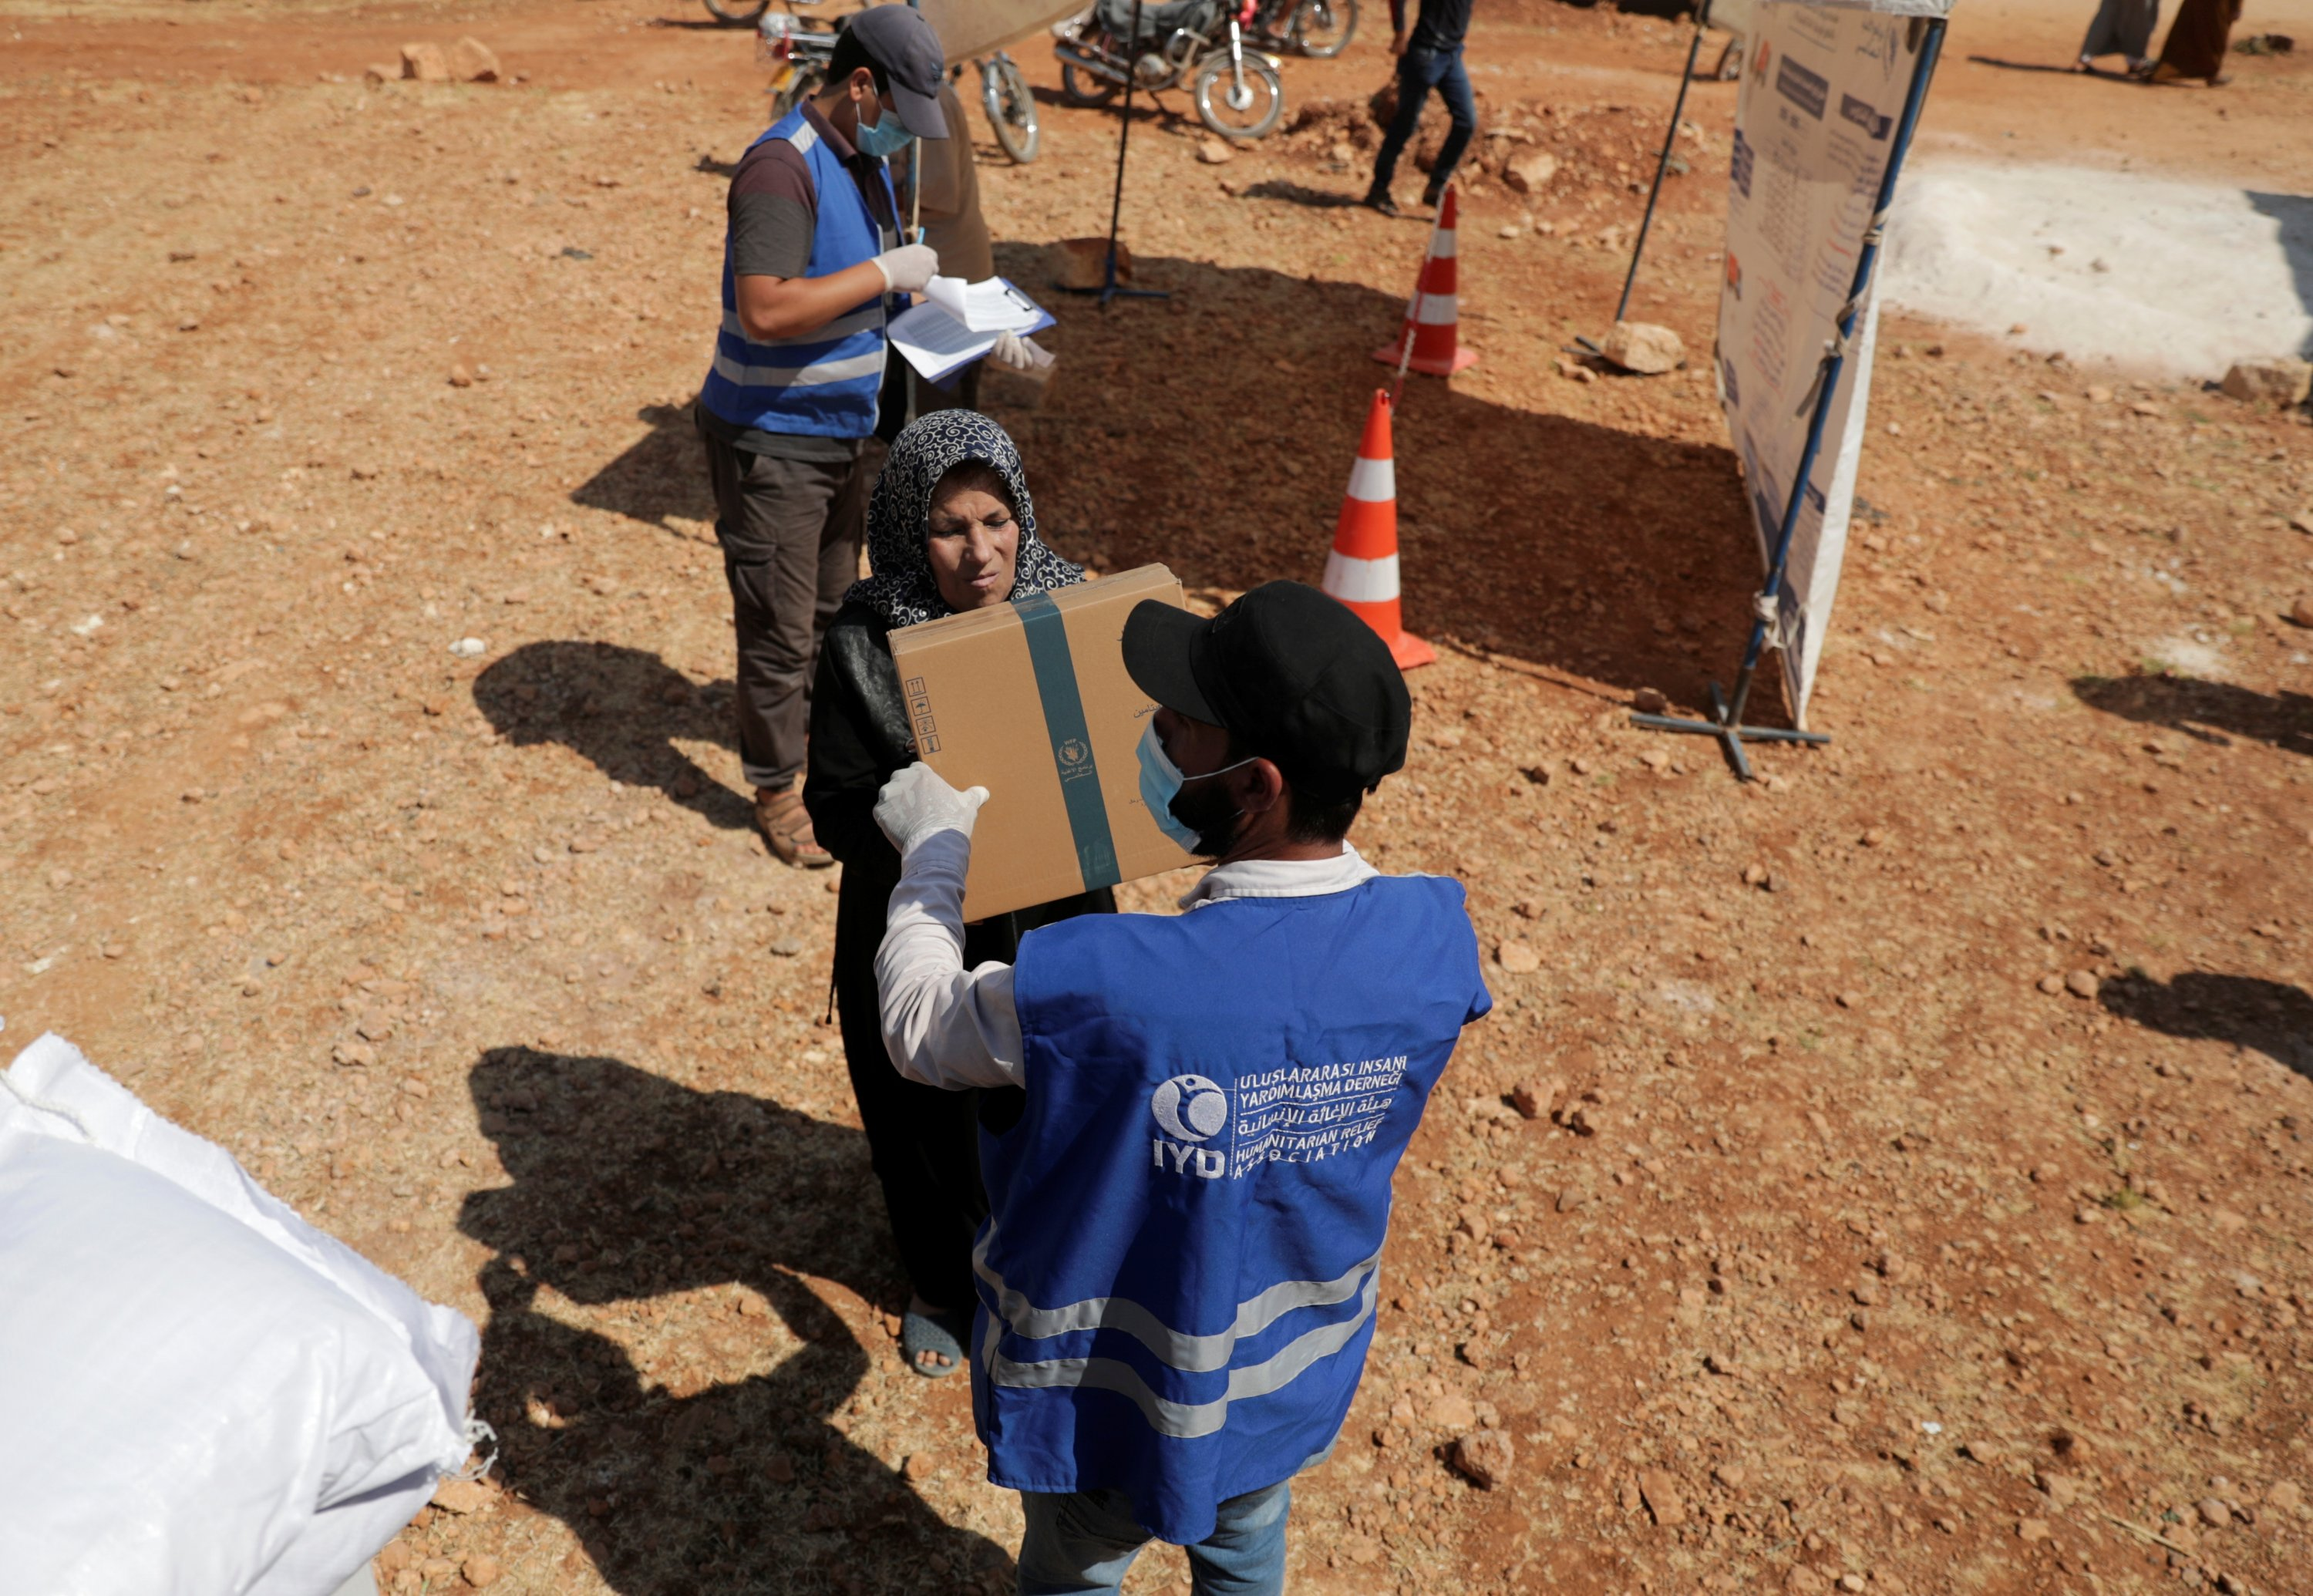 An internally displaced Syrian woman receives a parcel of humanitarian aid in the opposition-held Idlib, Syria, June 9, 2021. (Reuters Photo)